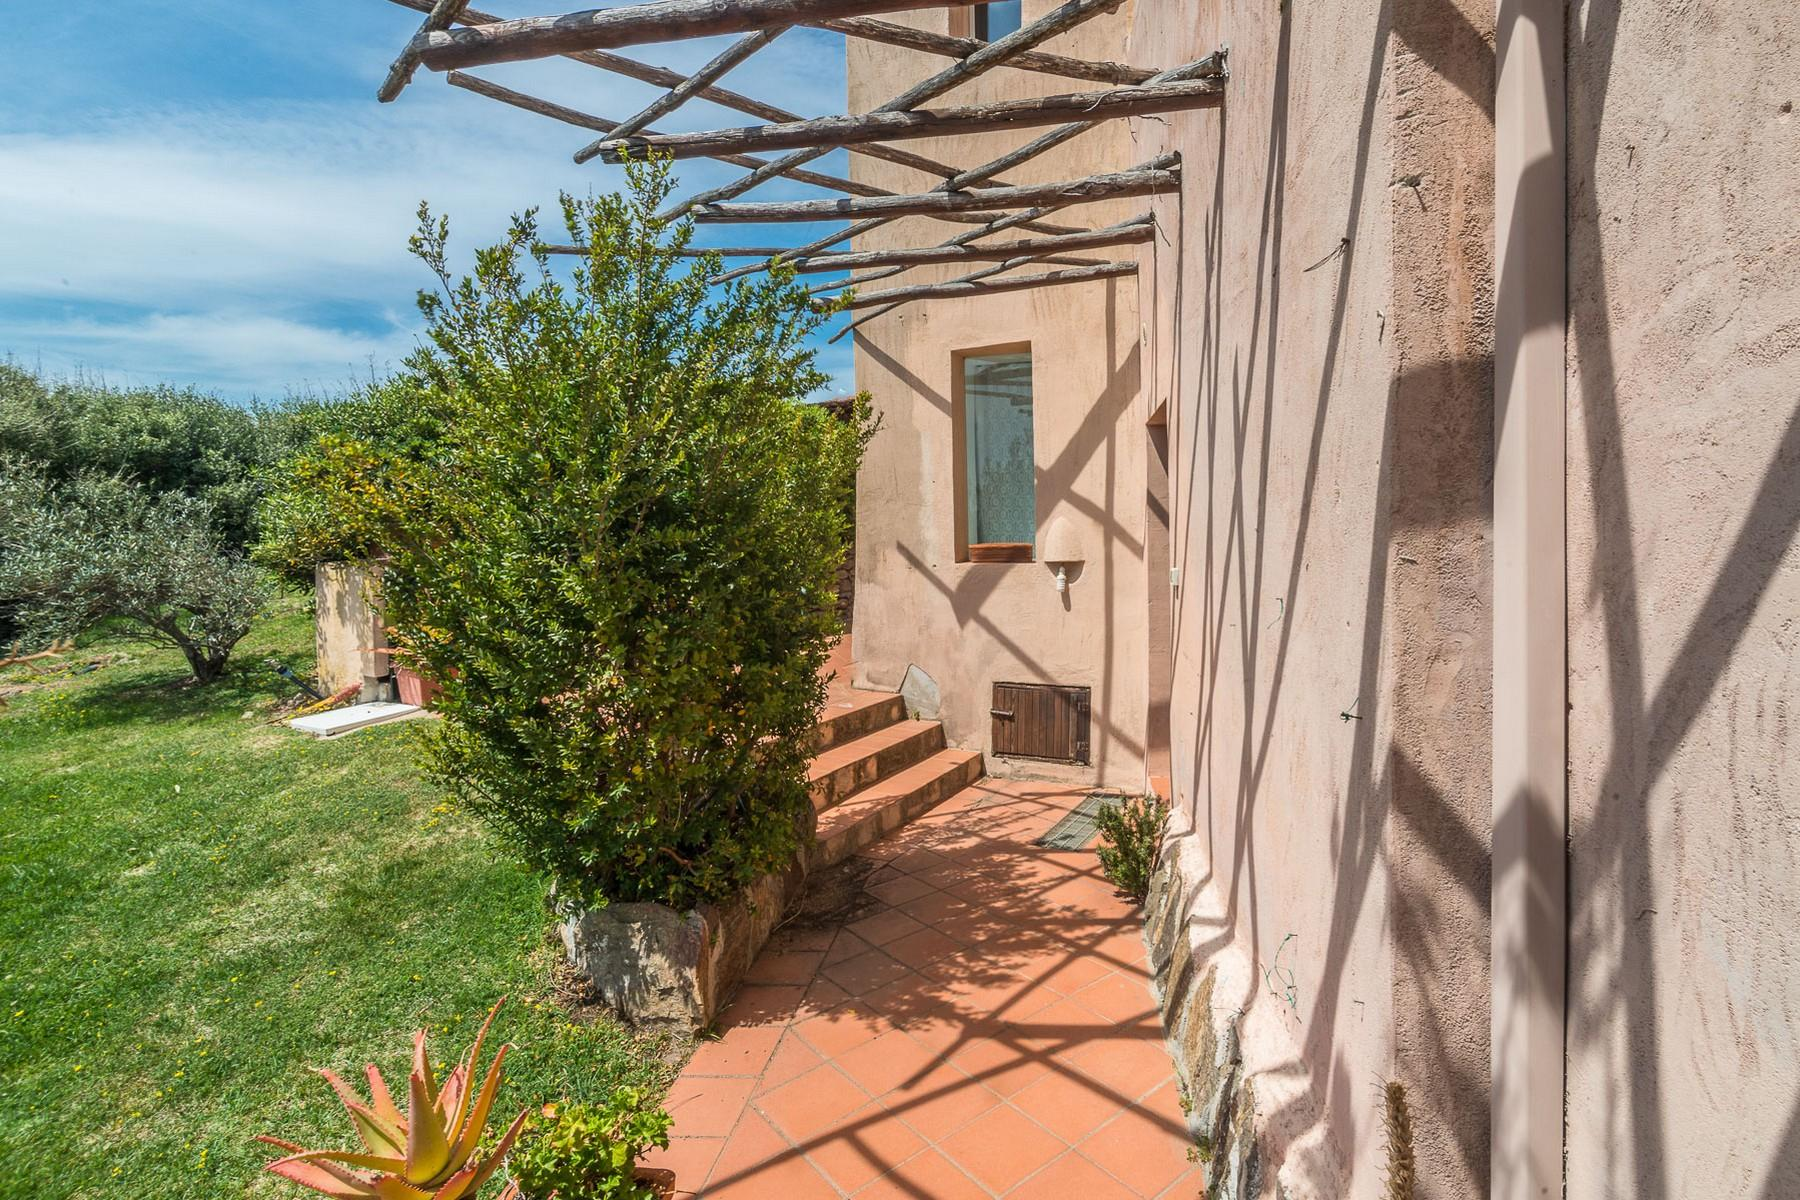 Porto Cervo Cala Granu Delightful Apartment a few steps from the beach - 20